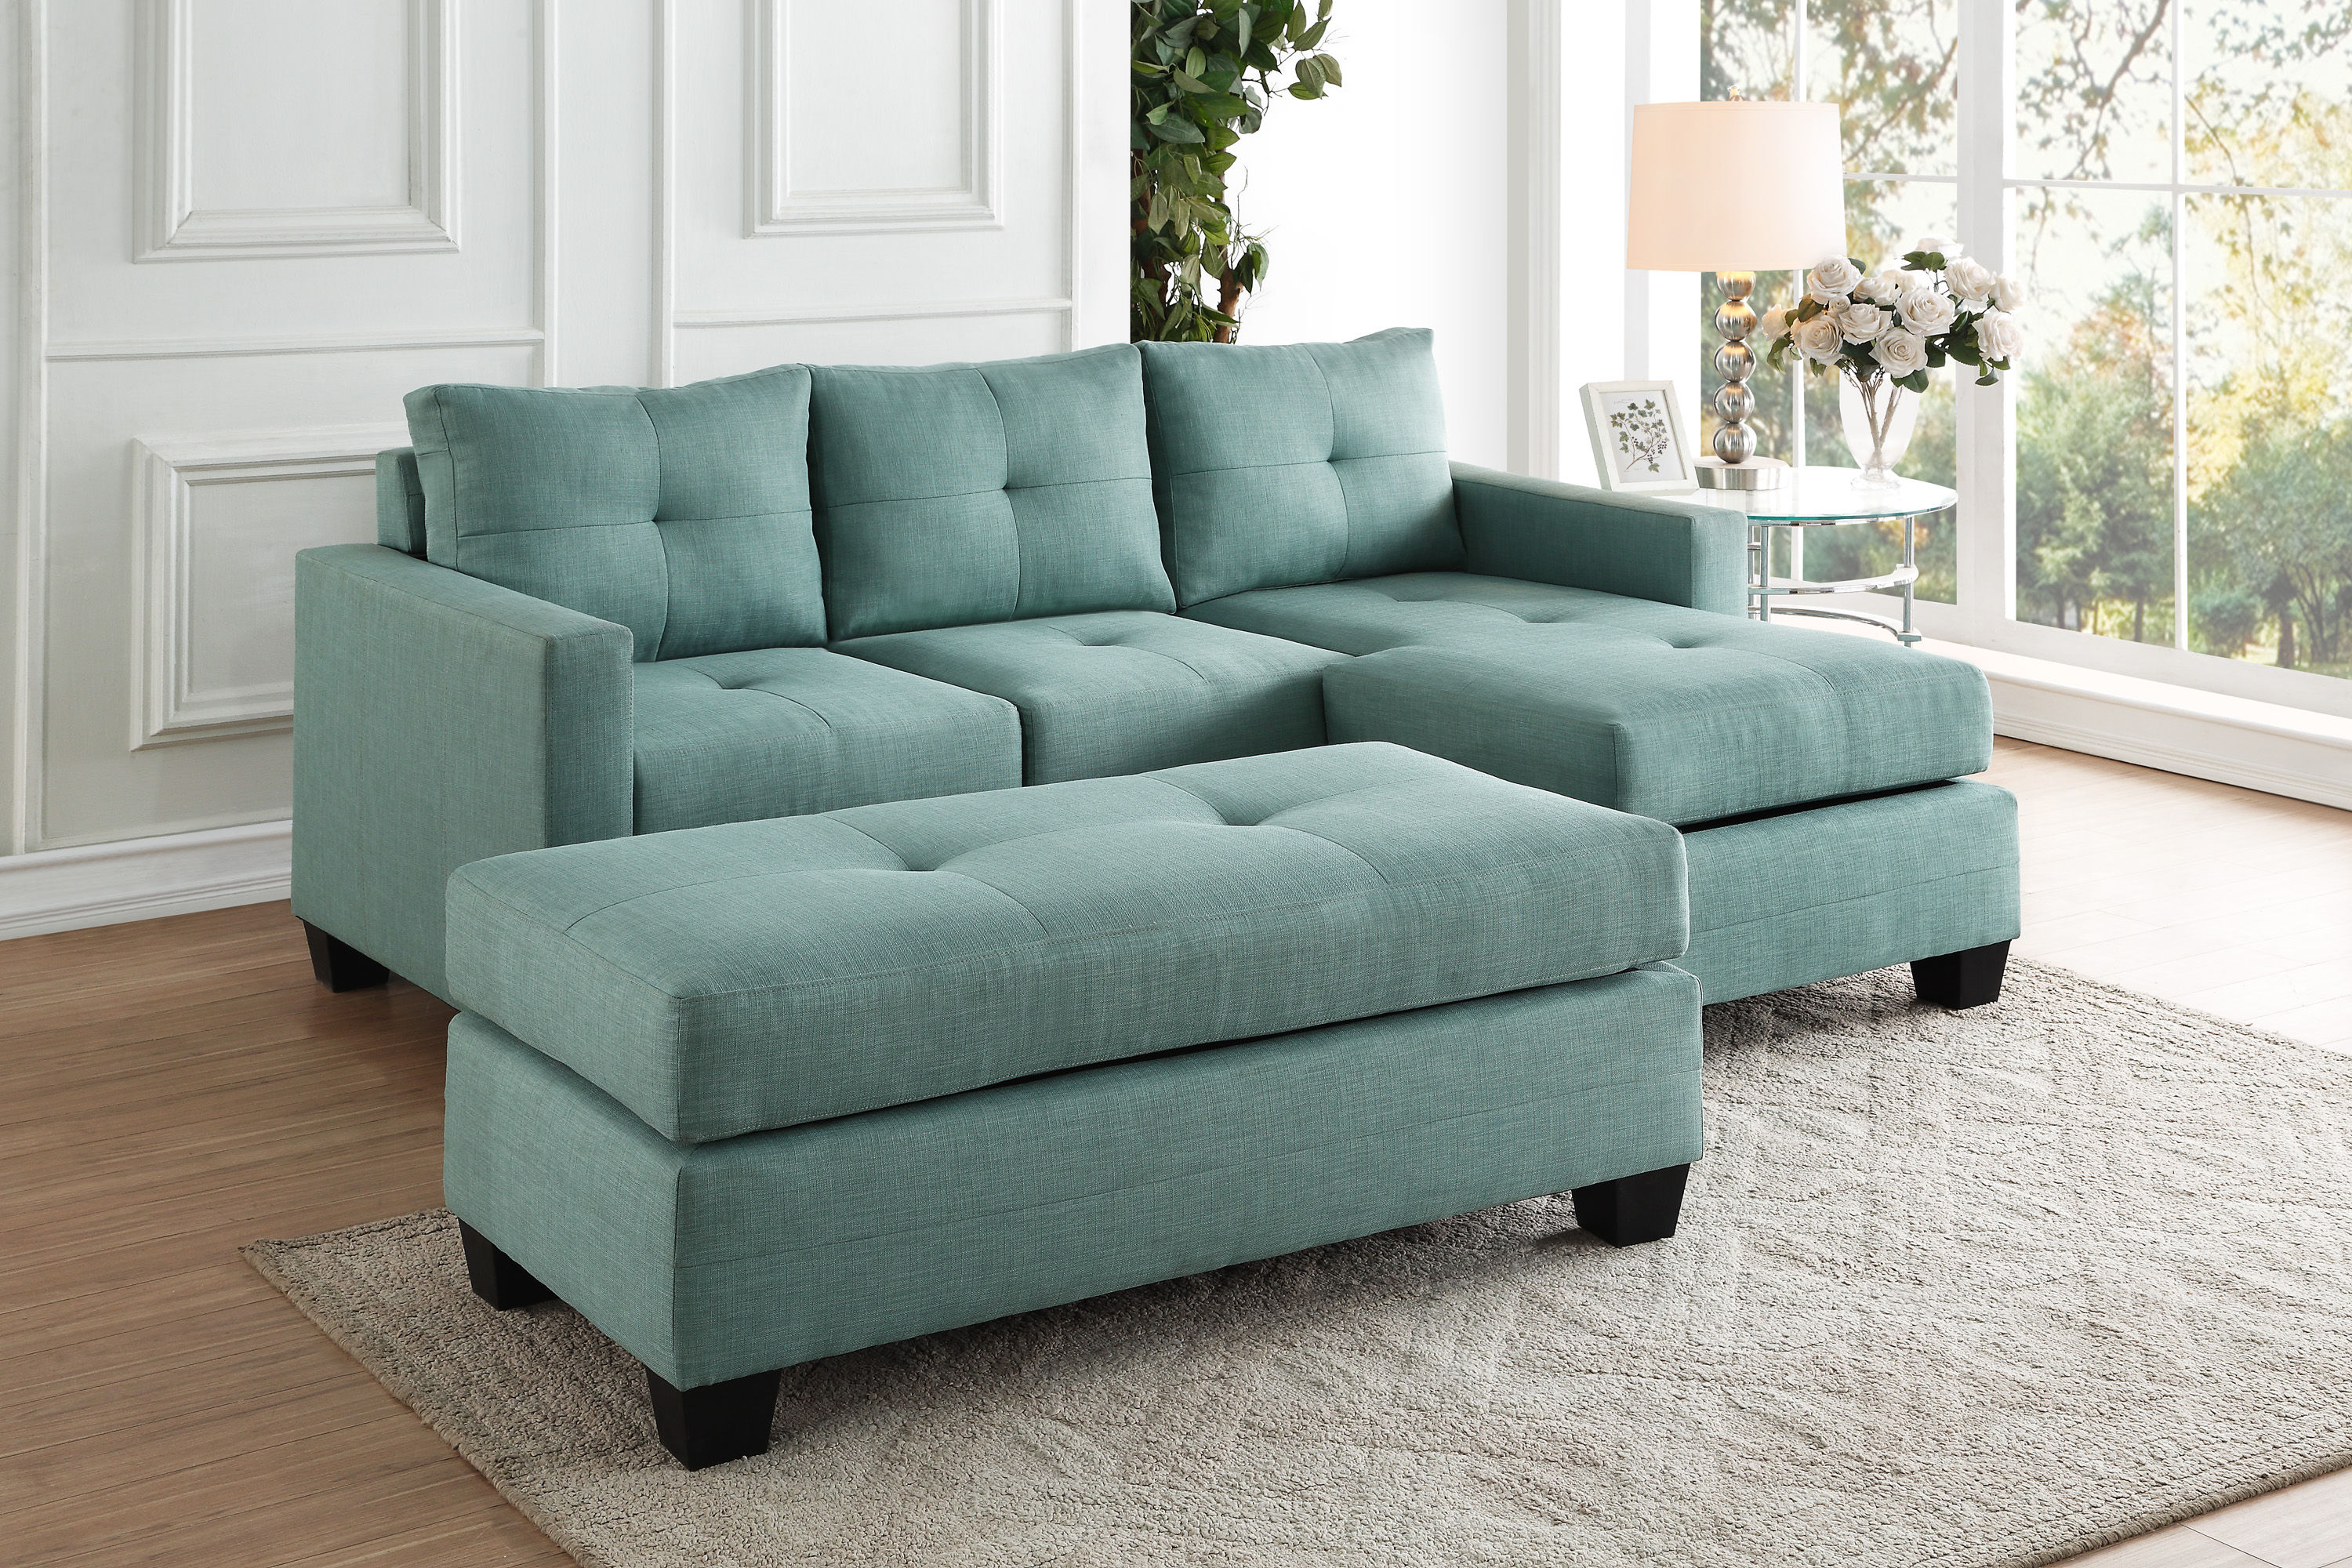 Home Elegance Phelps Teal Sofa Chaise With Ottoman